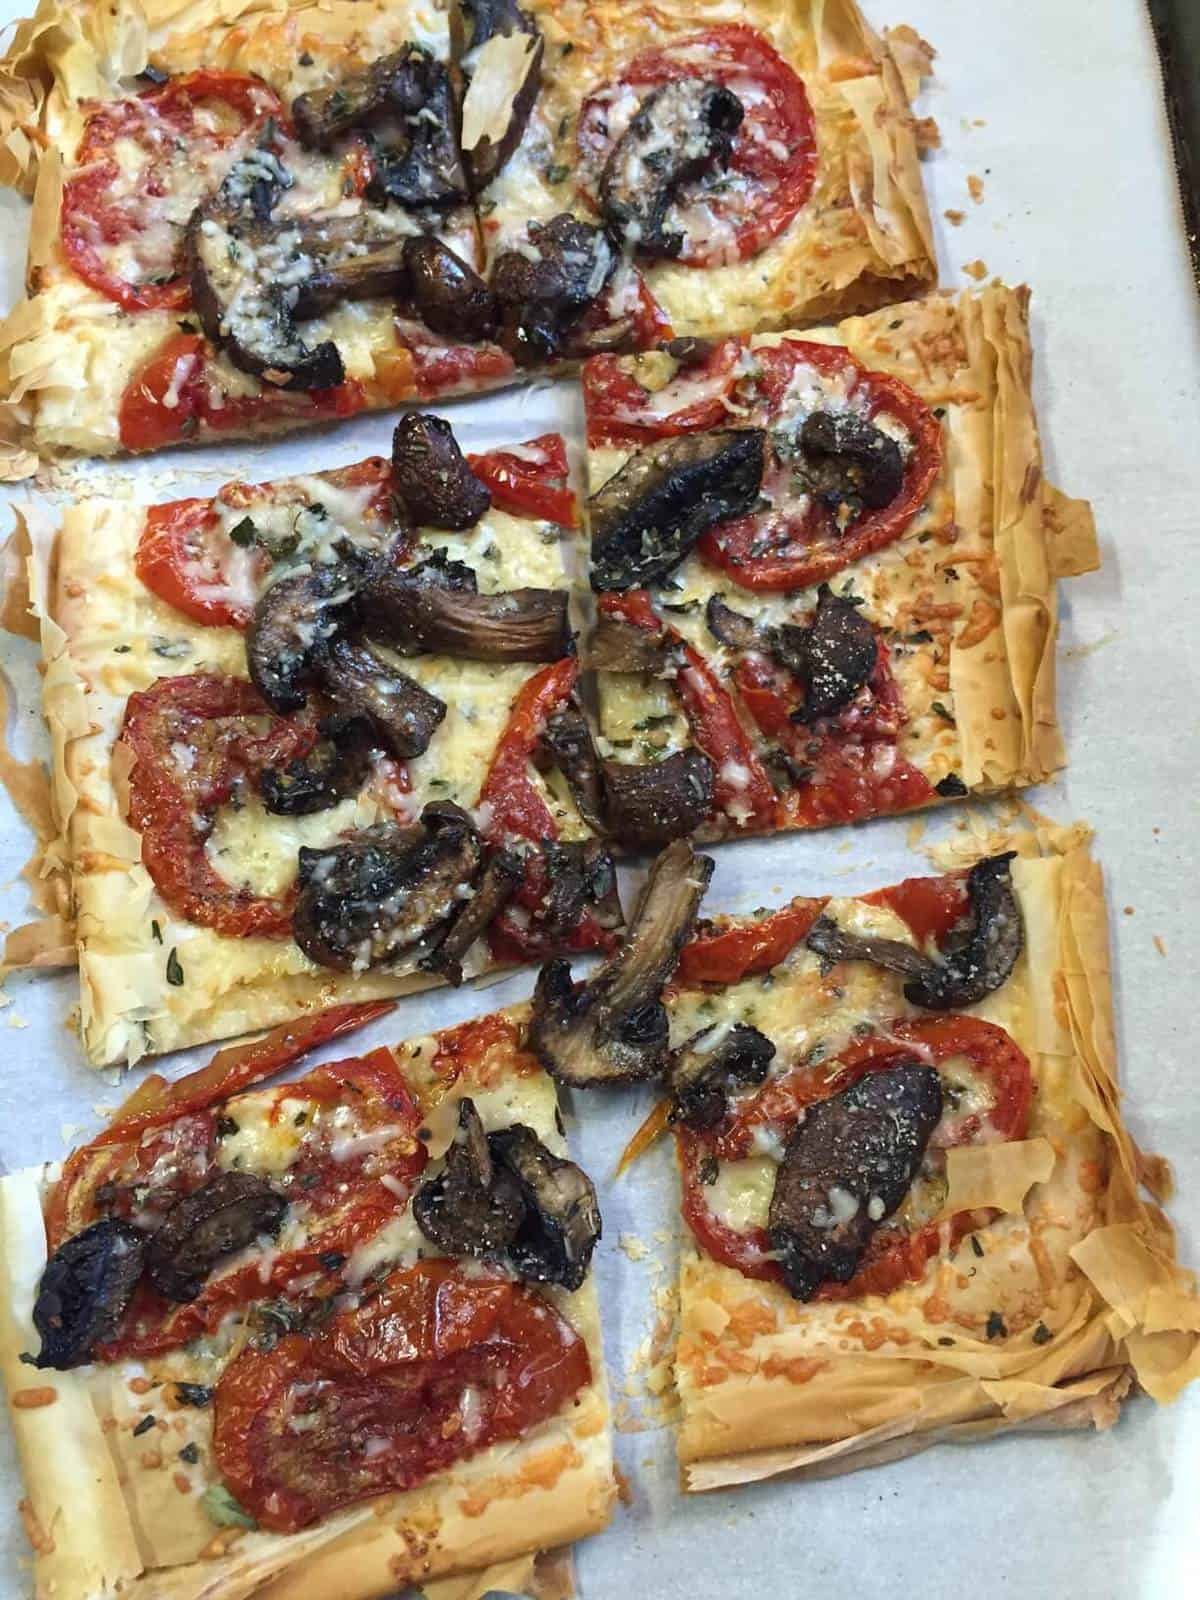 A low carb pizza featuring roasted mushrooms and tomatoes with a phyllo crust!  A delicious and diabetes friendly option for pizza night.